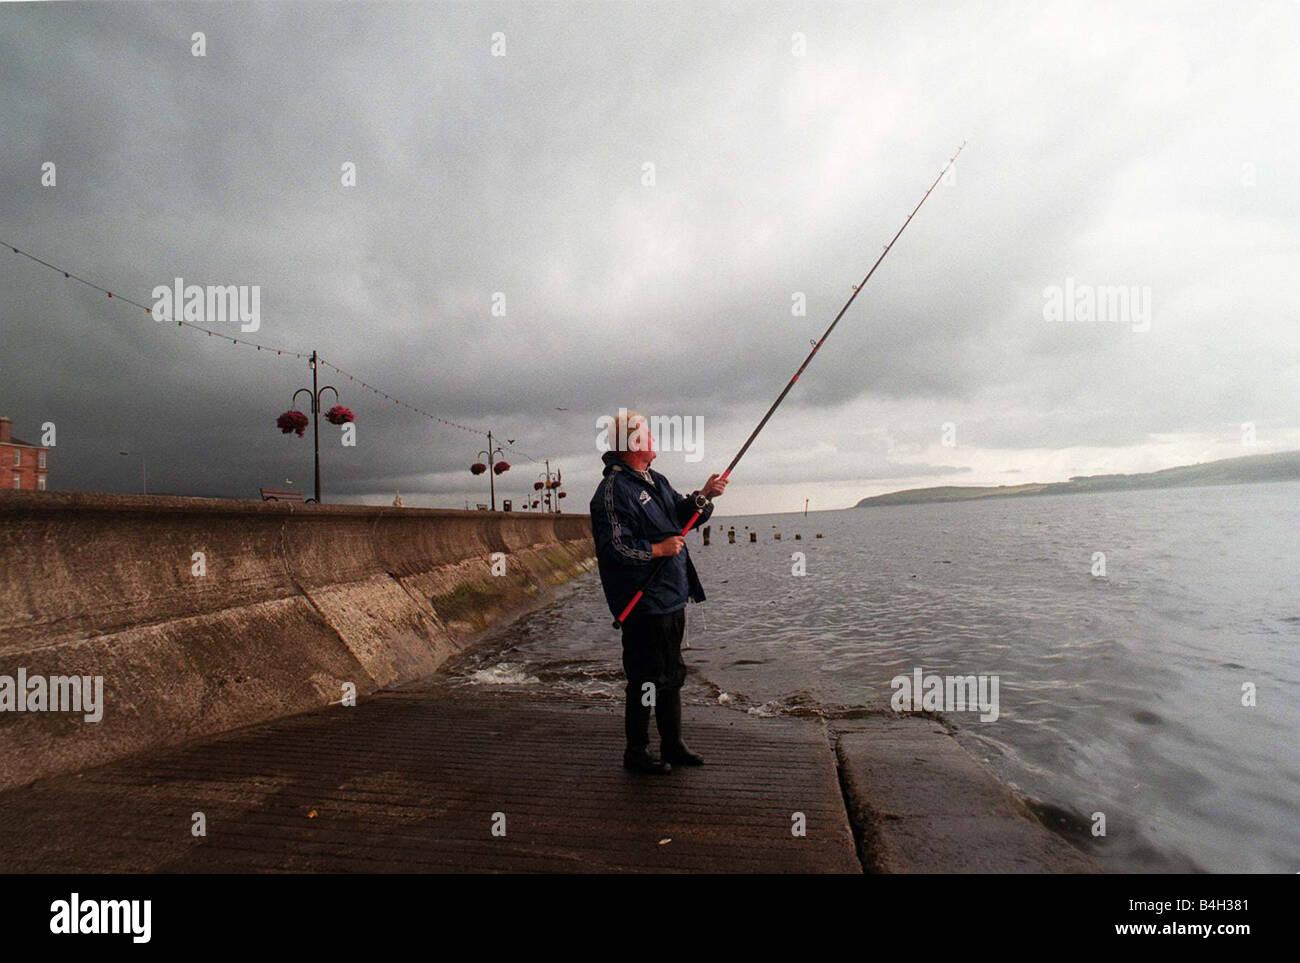 Bob Shields Daily Record features writer August 2000 on fishing trip rod reel bait fish - Stock Image